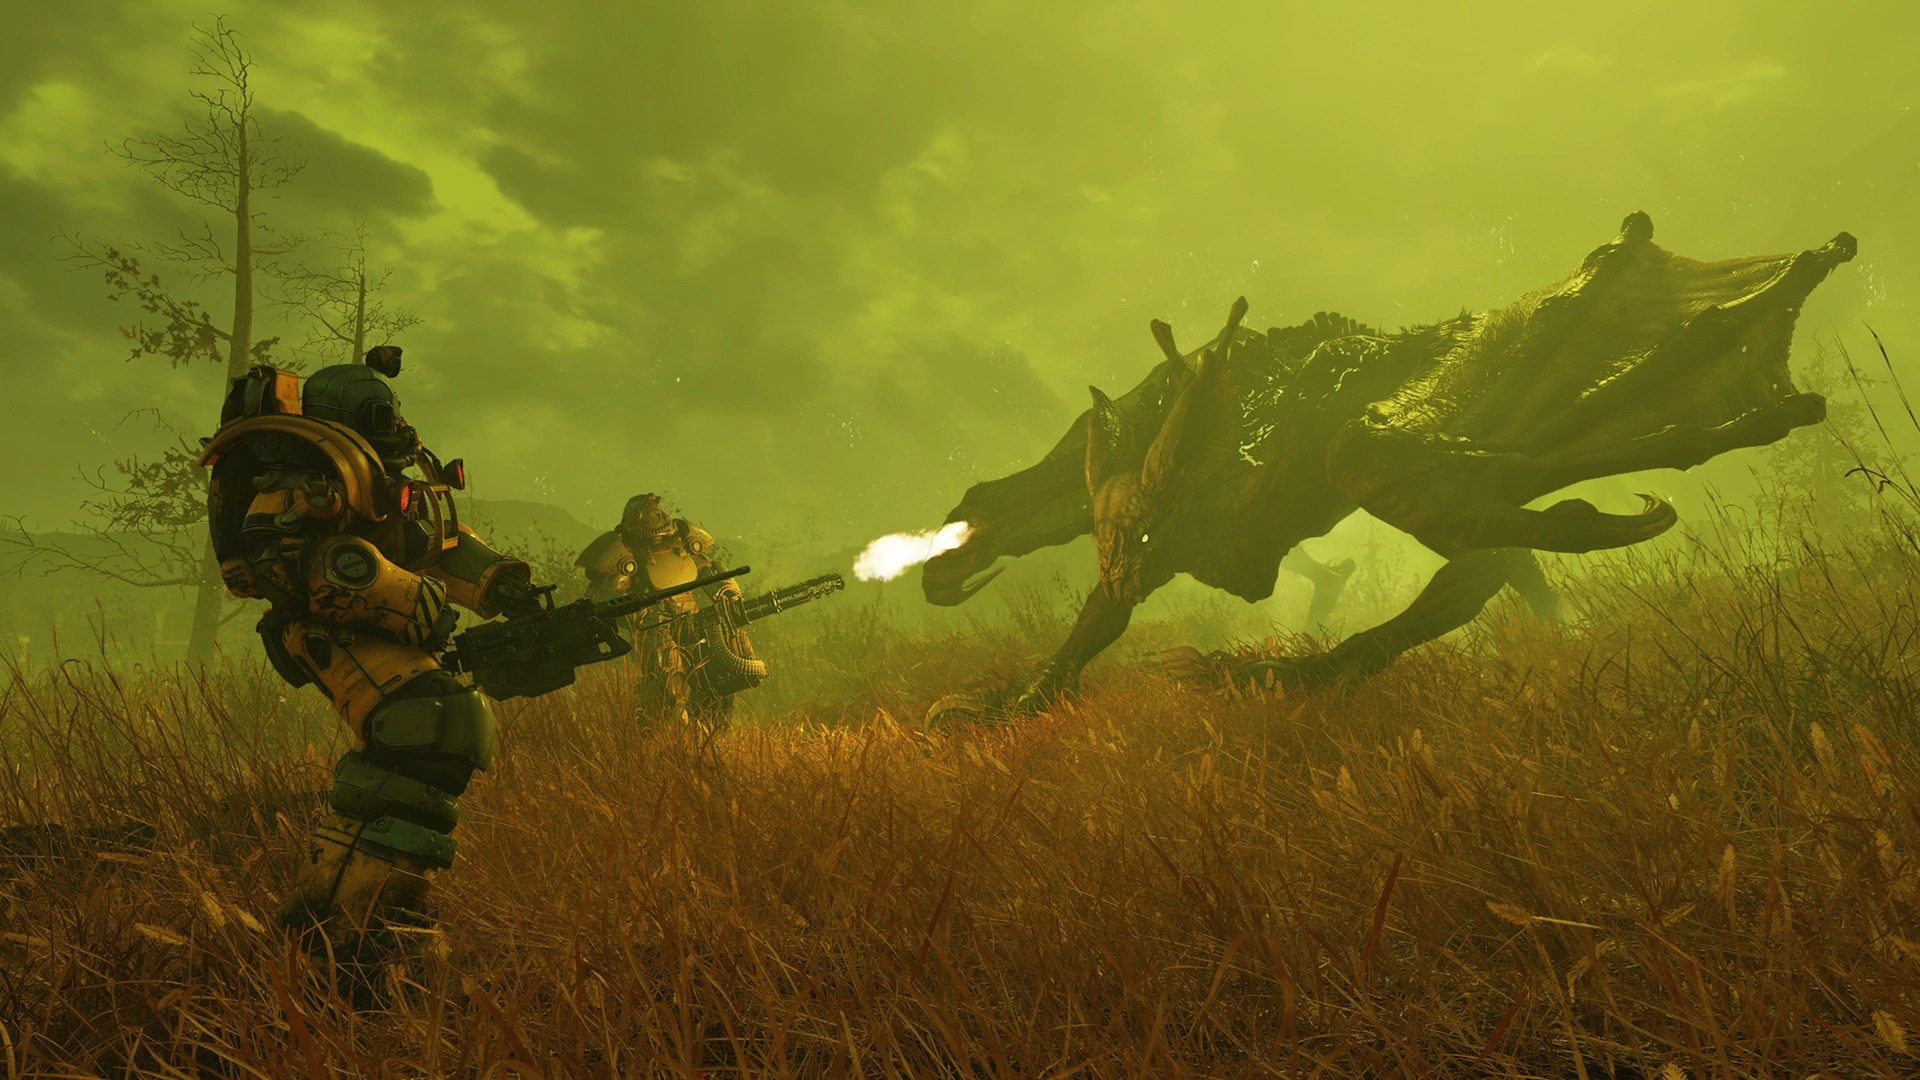 Fallout 76 Nuke Code Decryption Has Already Been Busted By Online Tools PCGamesN